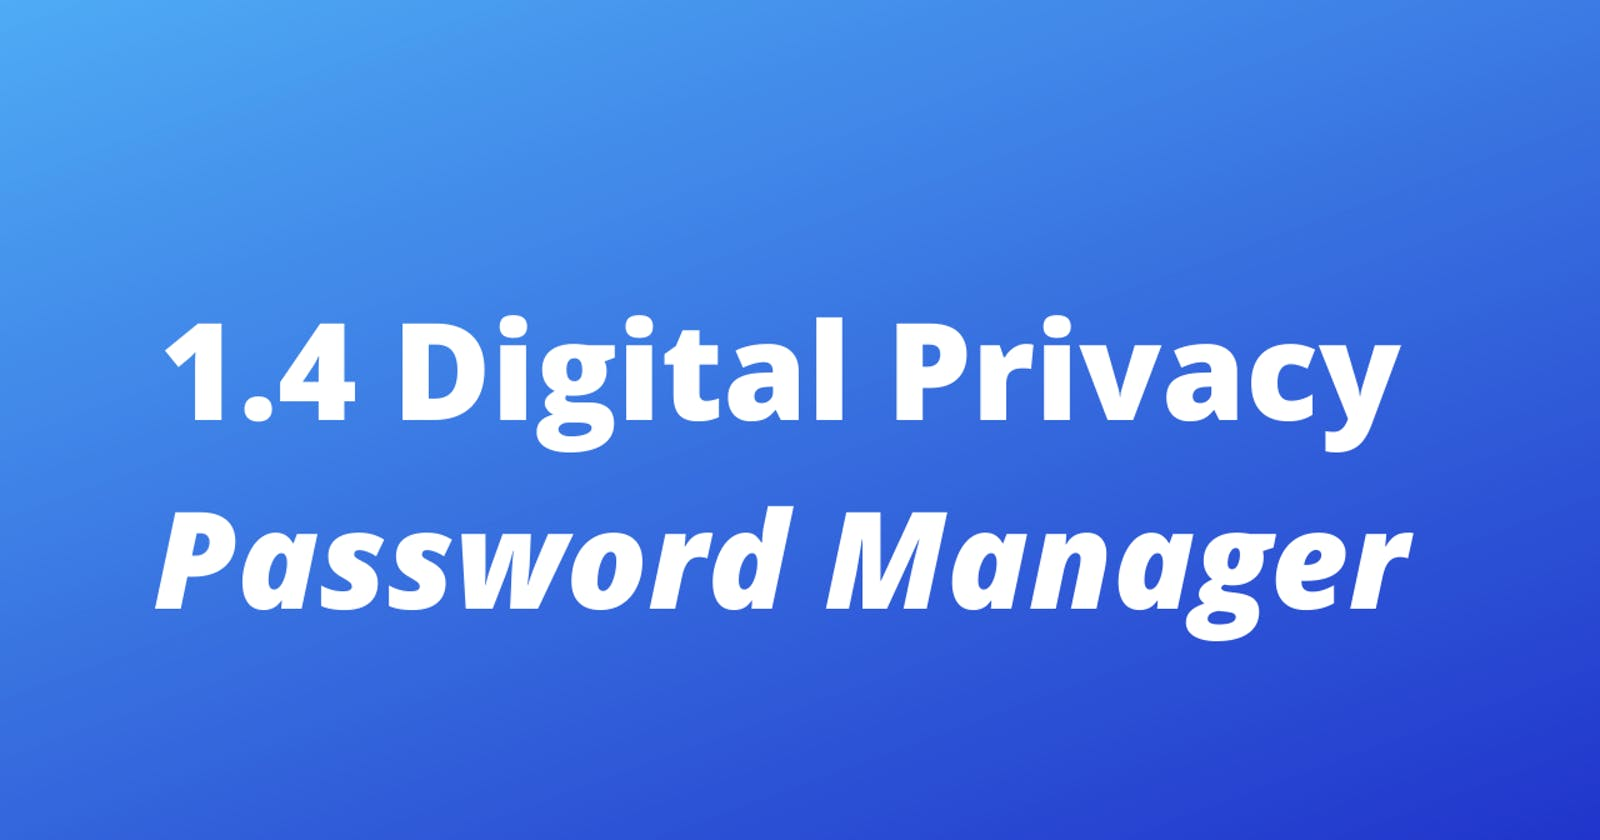 1.4 Digital Privacy: Password Manager